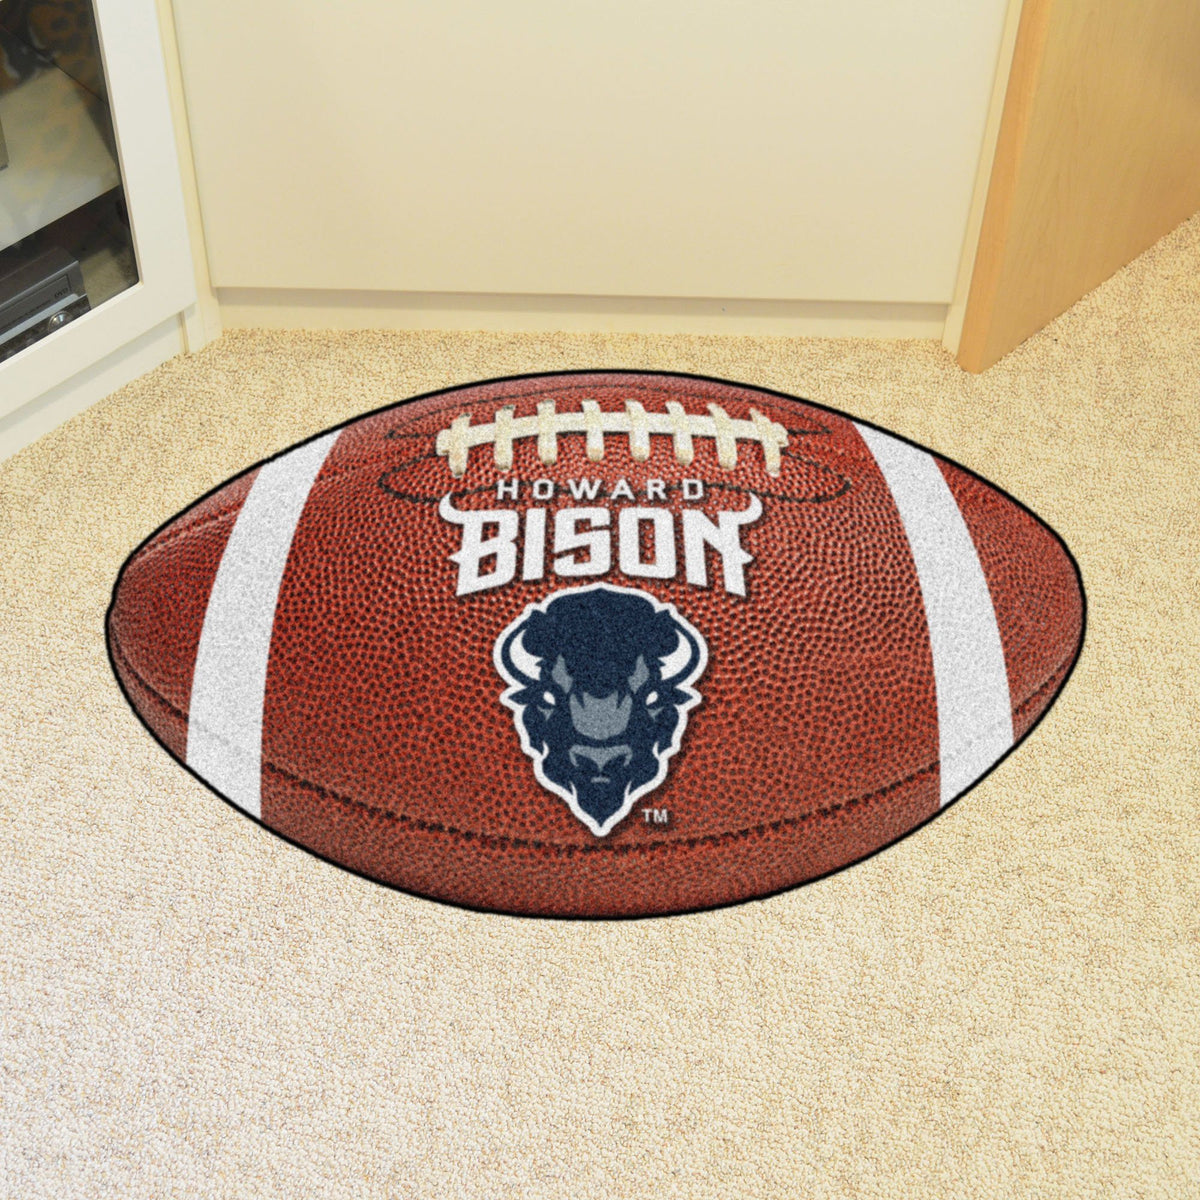 Collegiate - Football Mat: A - K Collegiate Mats, Rectangular Mats, Football Mat, Collegiate, Home Fan Mats Howard